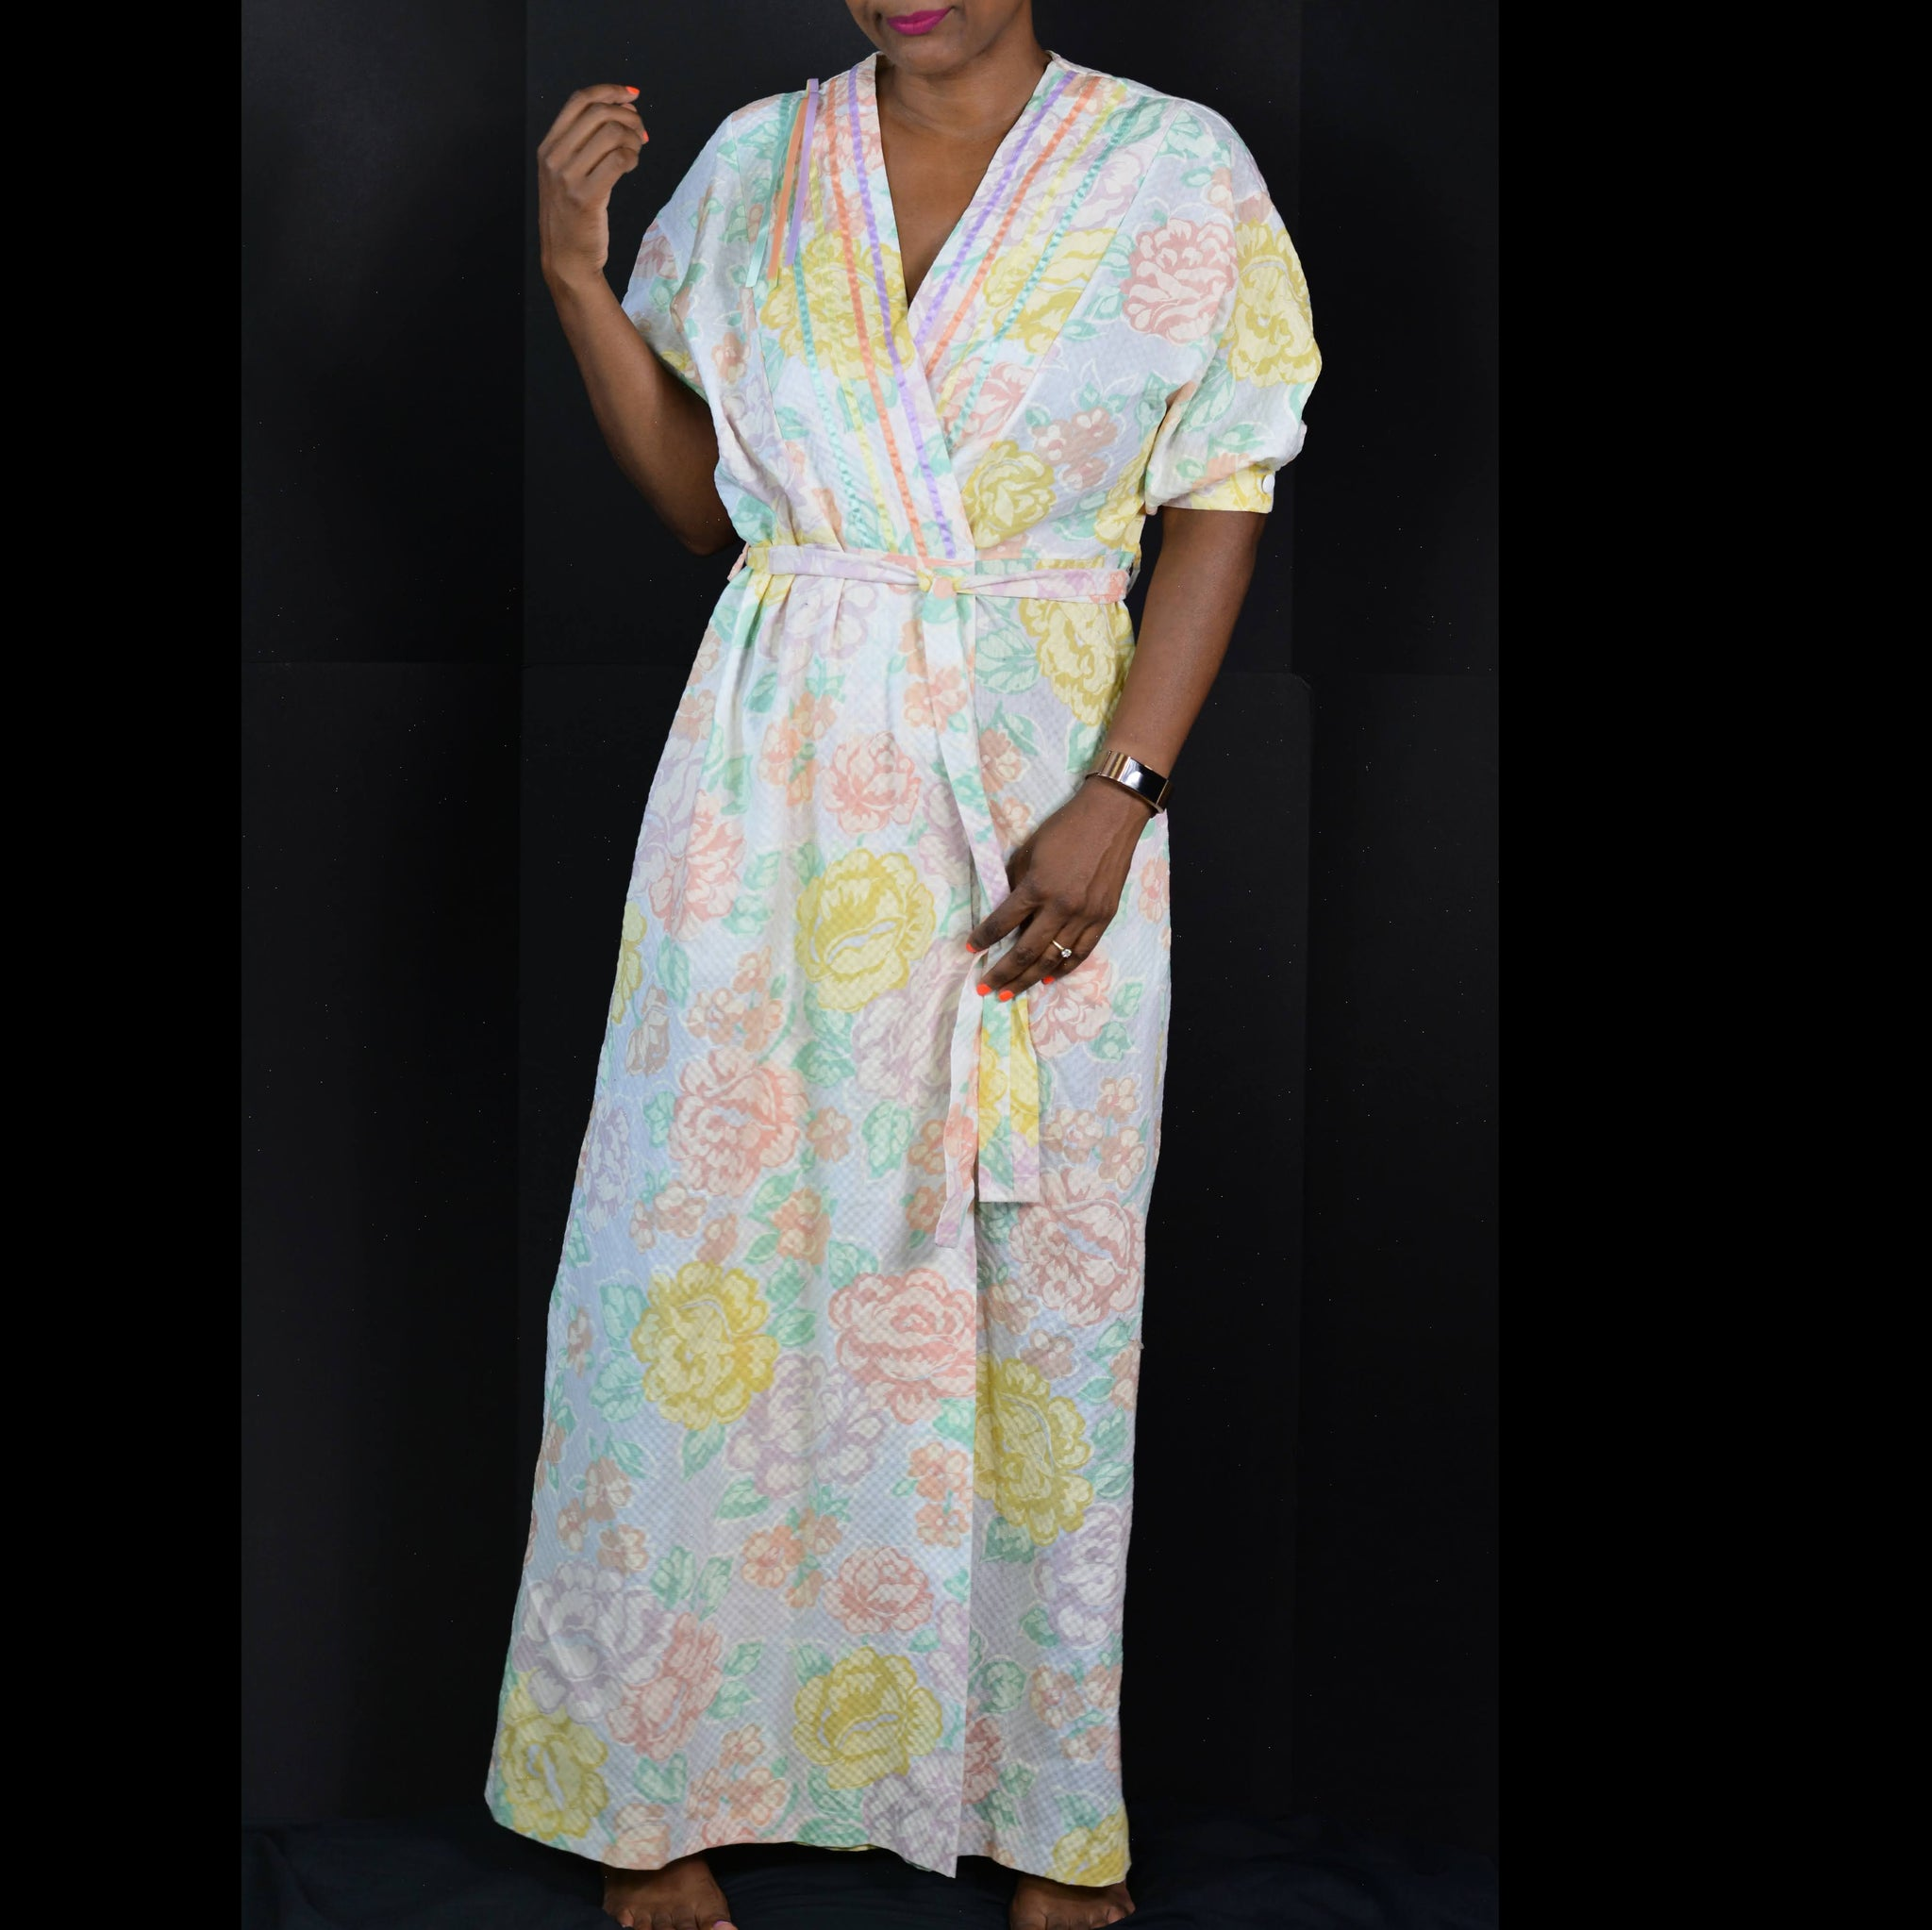 Vintage Wrap Robe Sears at Home Wear Pastel Floral Lounge Size Small